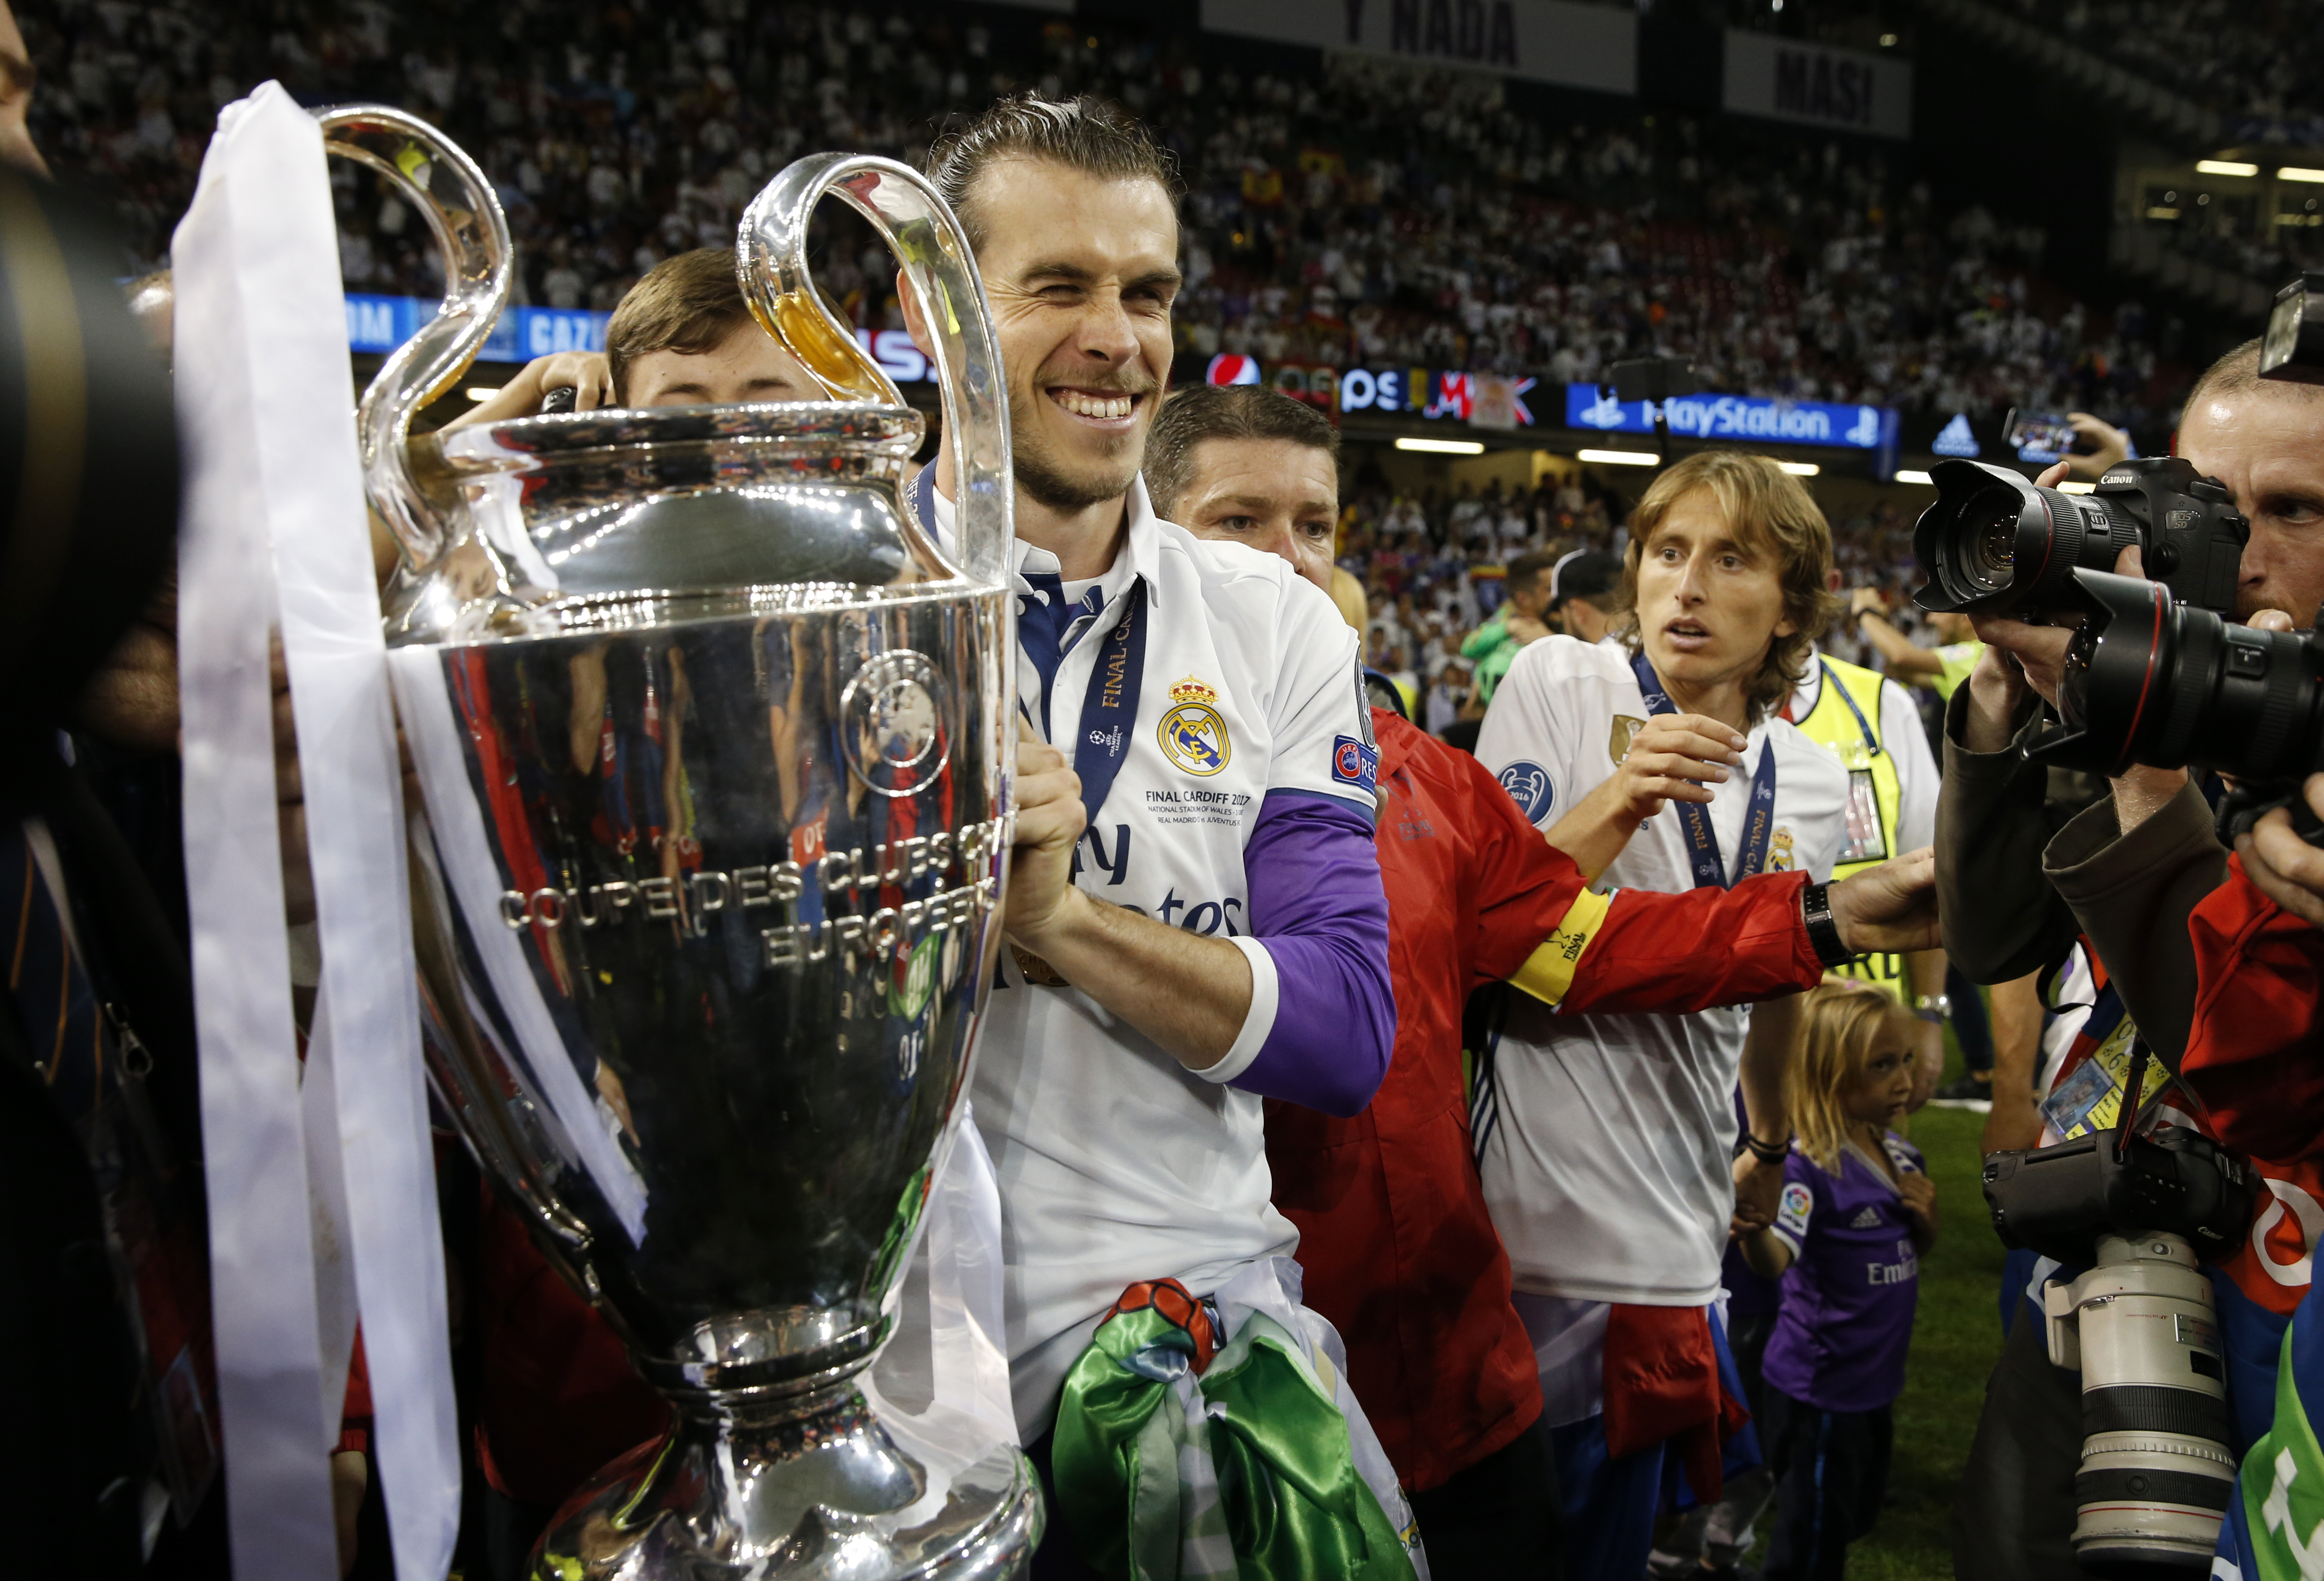 Football: 'Happy' Bale aims for more trophies at Real Madrid